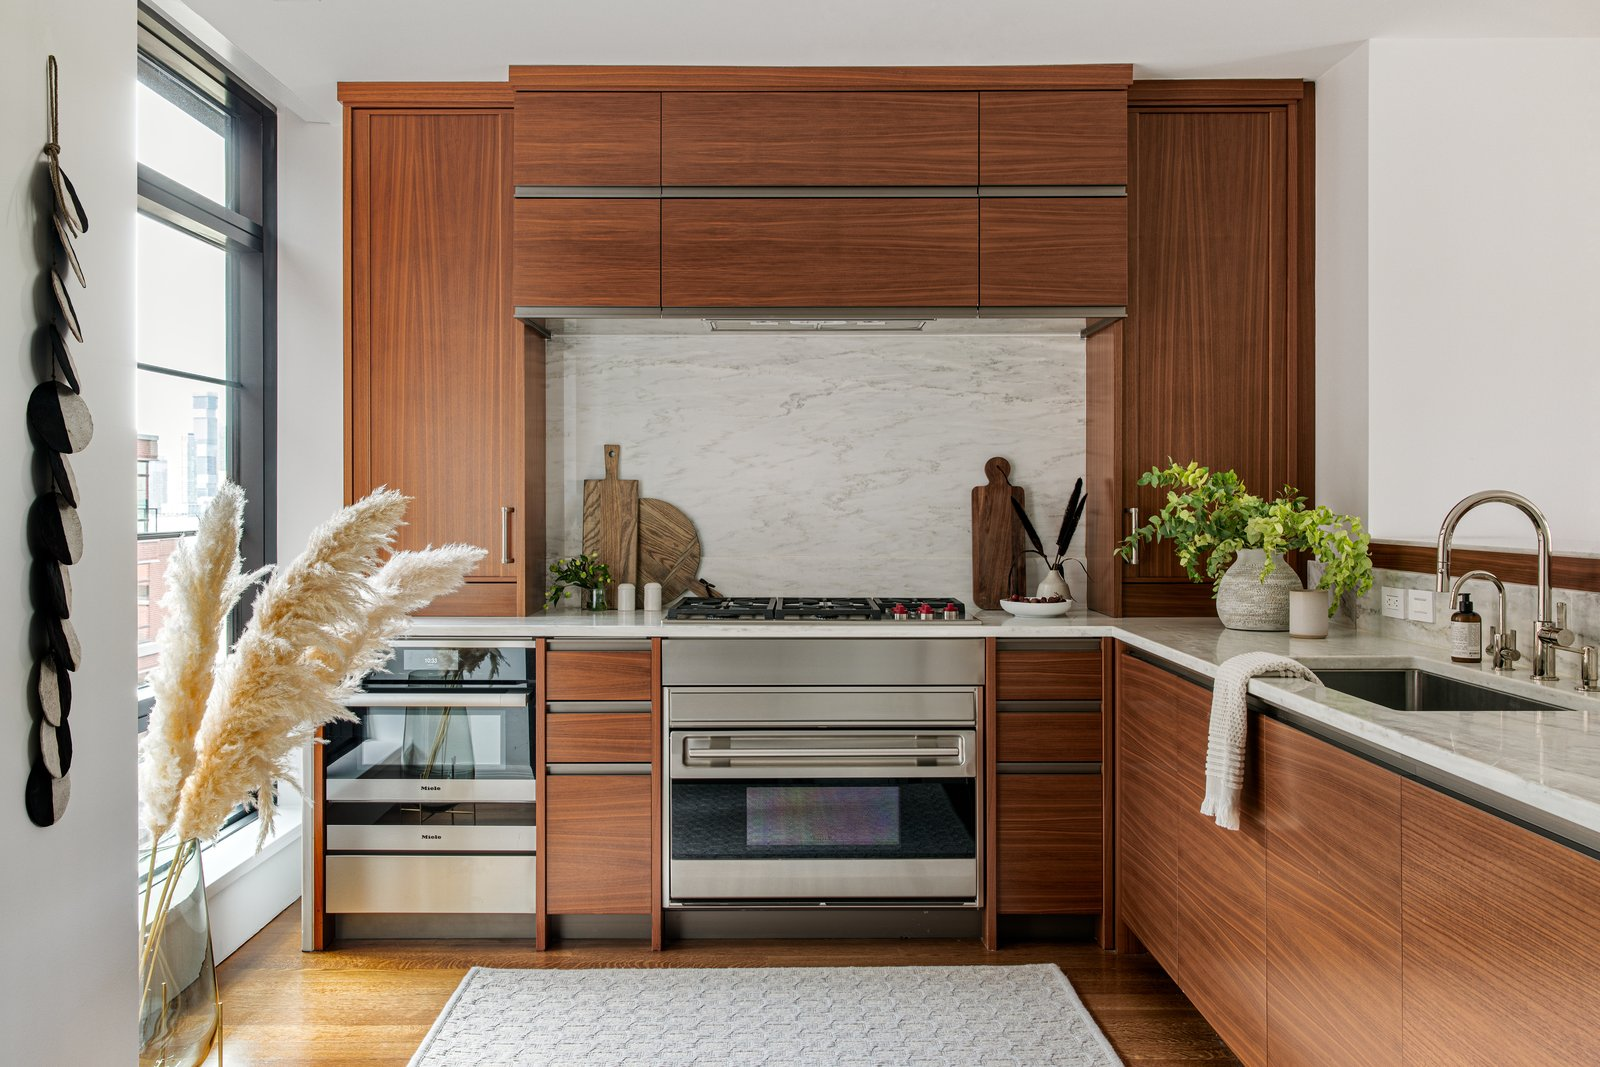 Charles Street Oasis Becky Shea Design kitchen